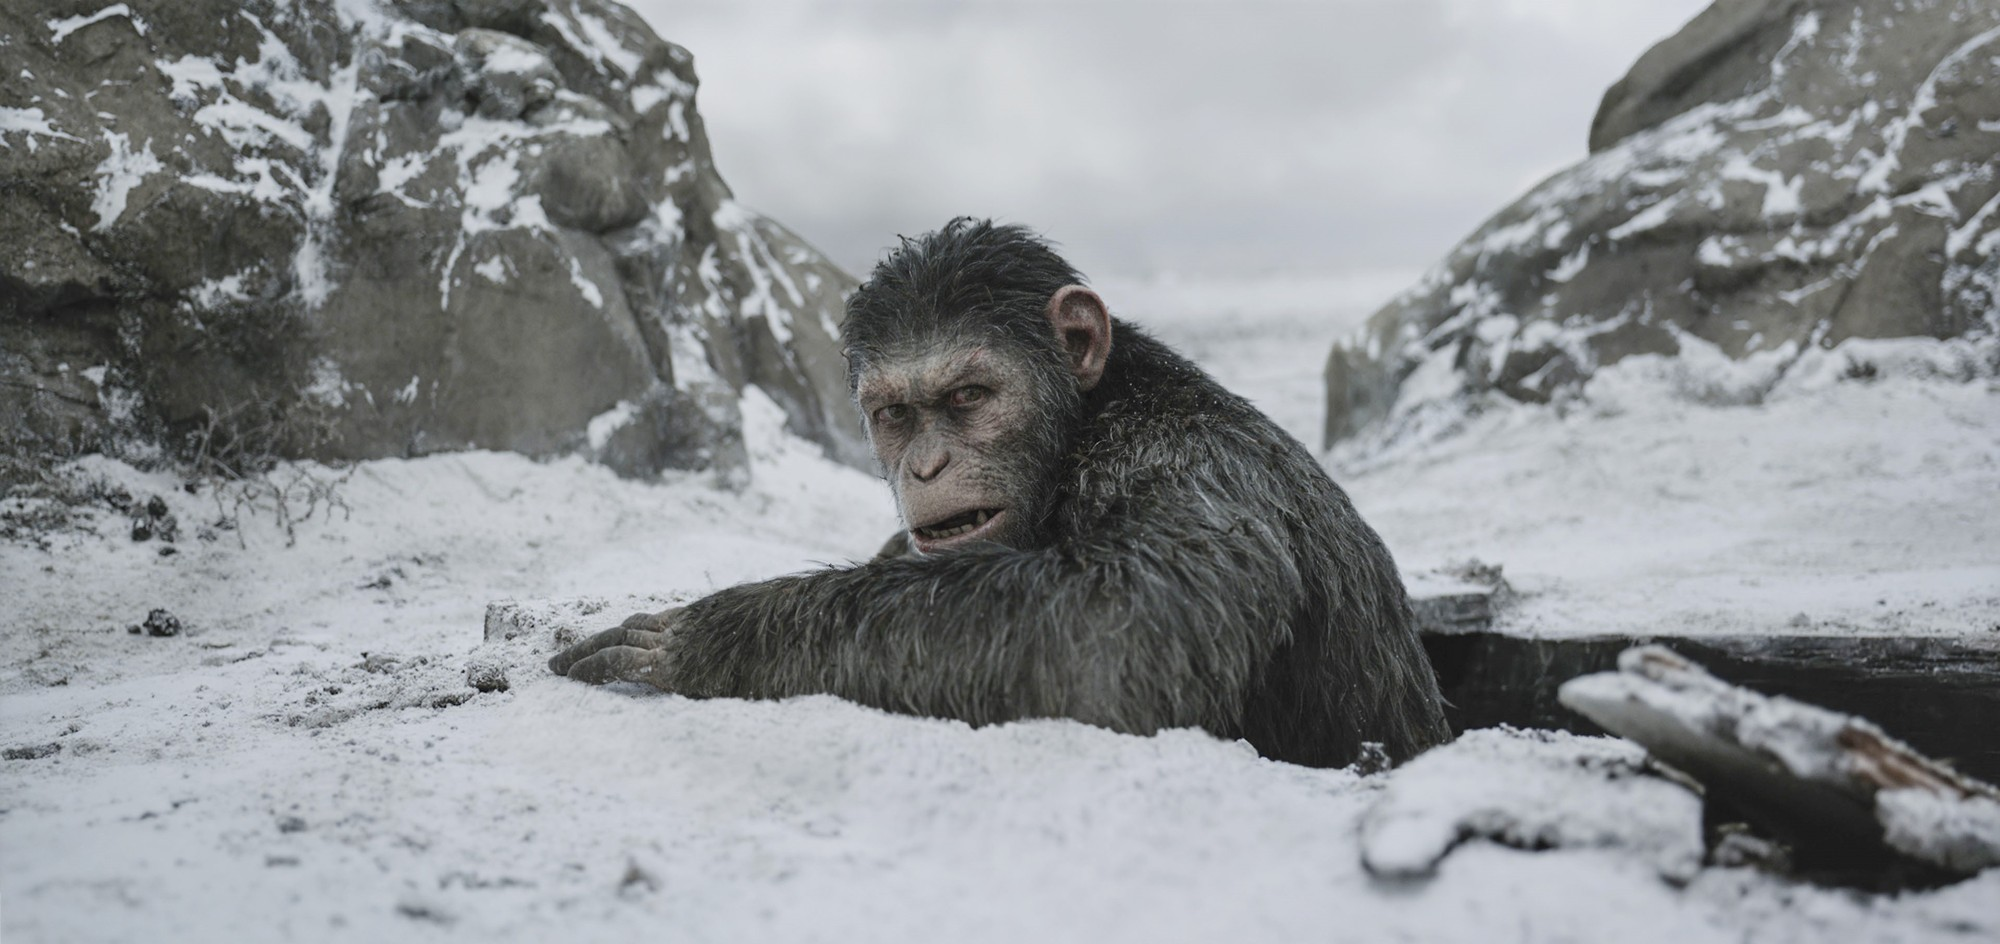 Caesar from 20th Century Fox's War for the Planet of the Apes (2017)